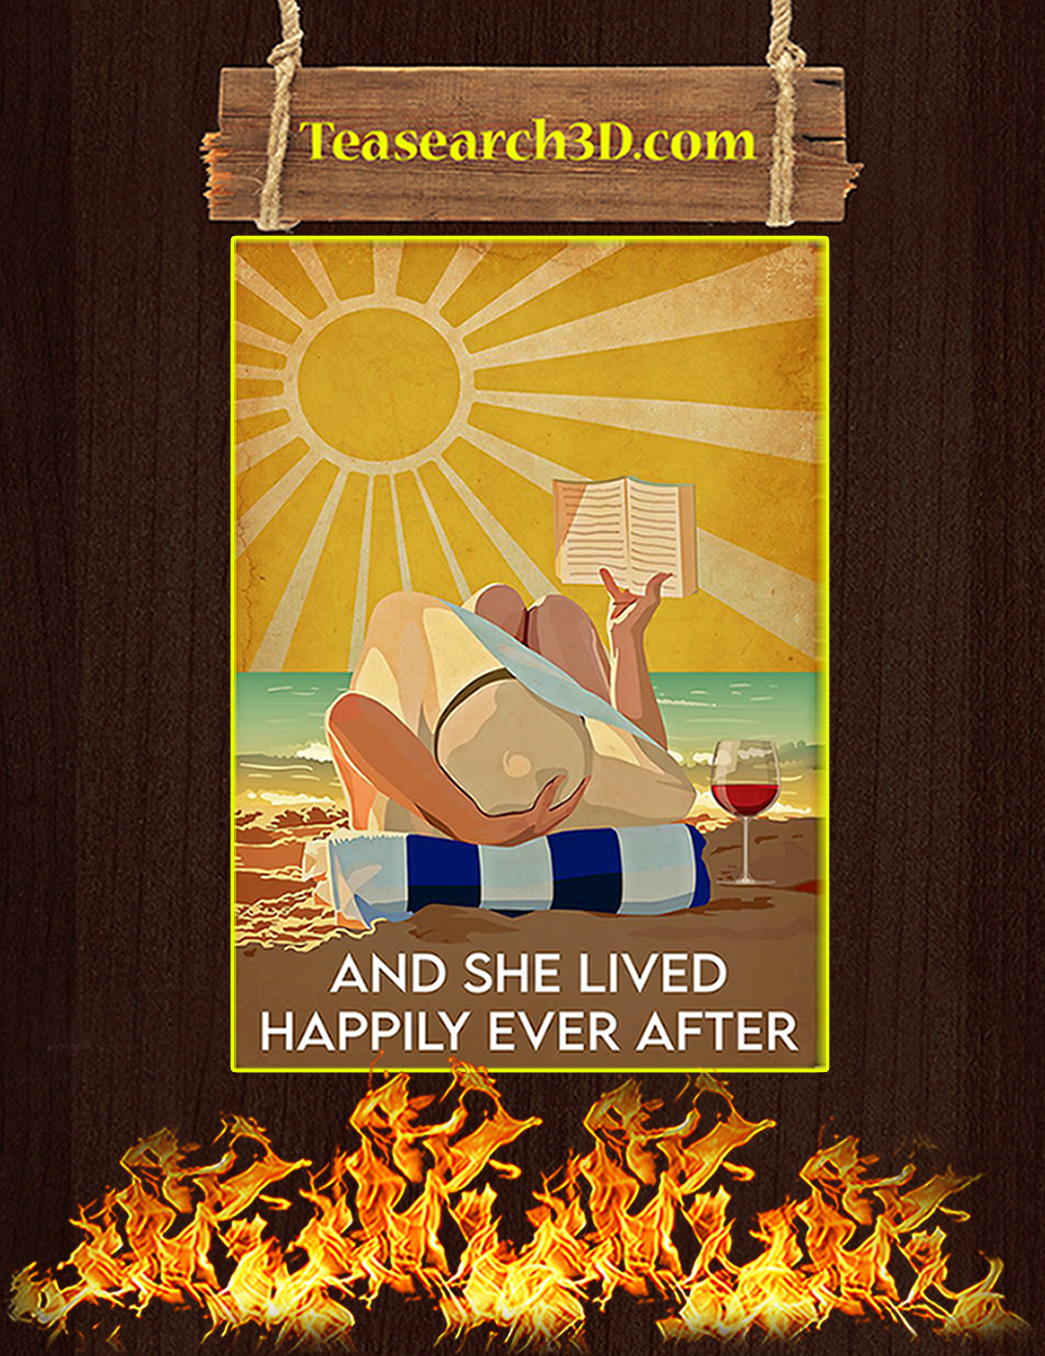 Ocean and she lived happily after ever poster A1